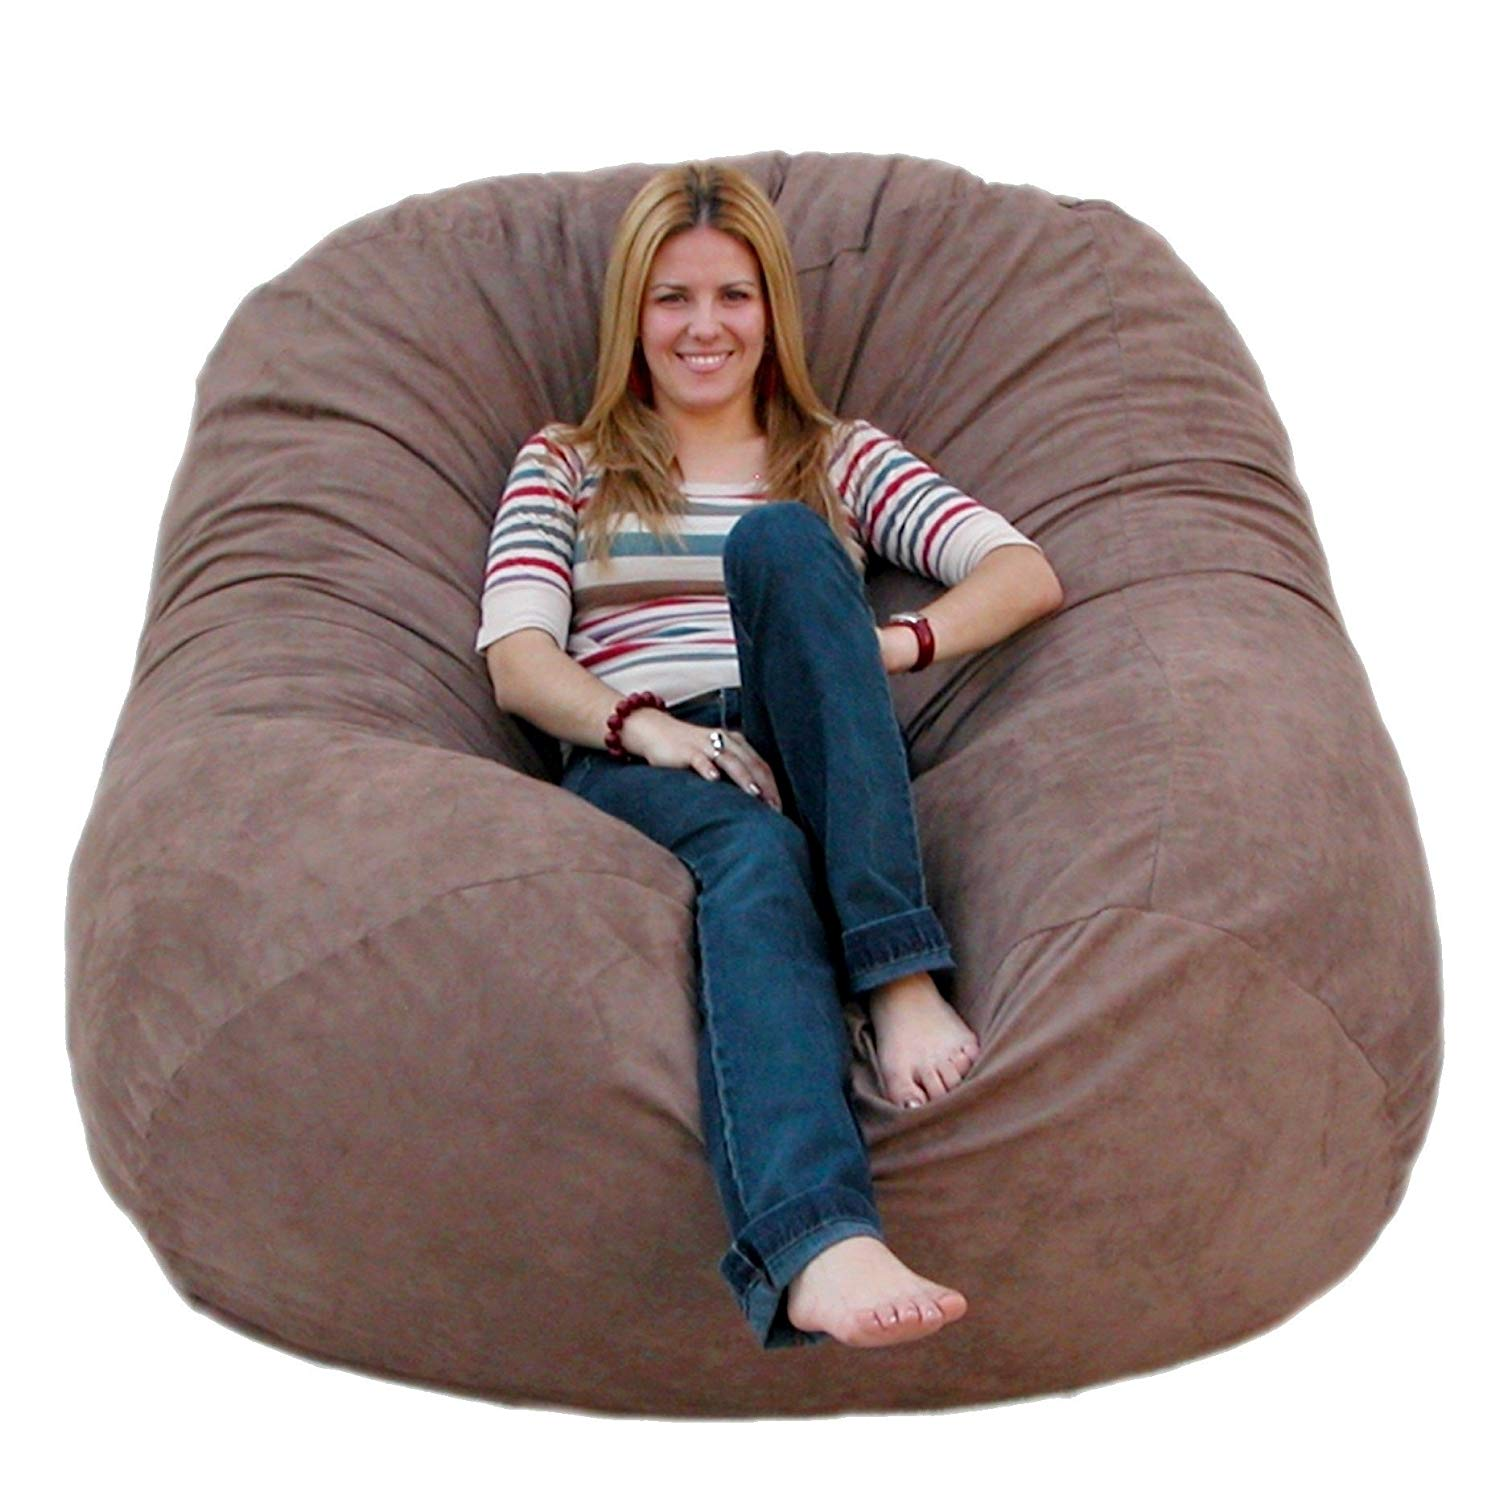 Cozy Sack 6 Feet Large Bean Bag